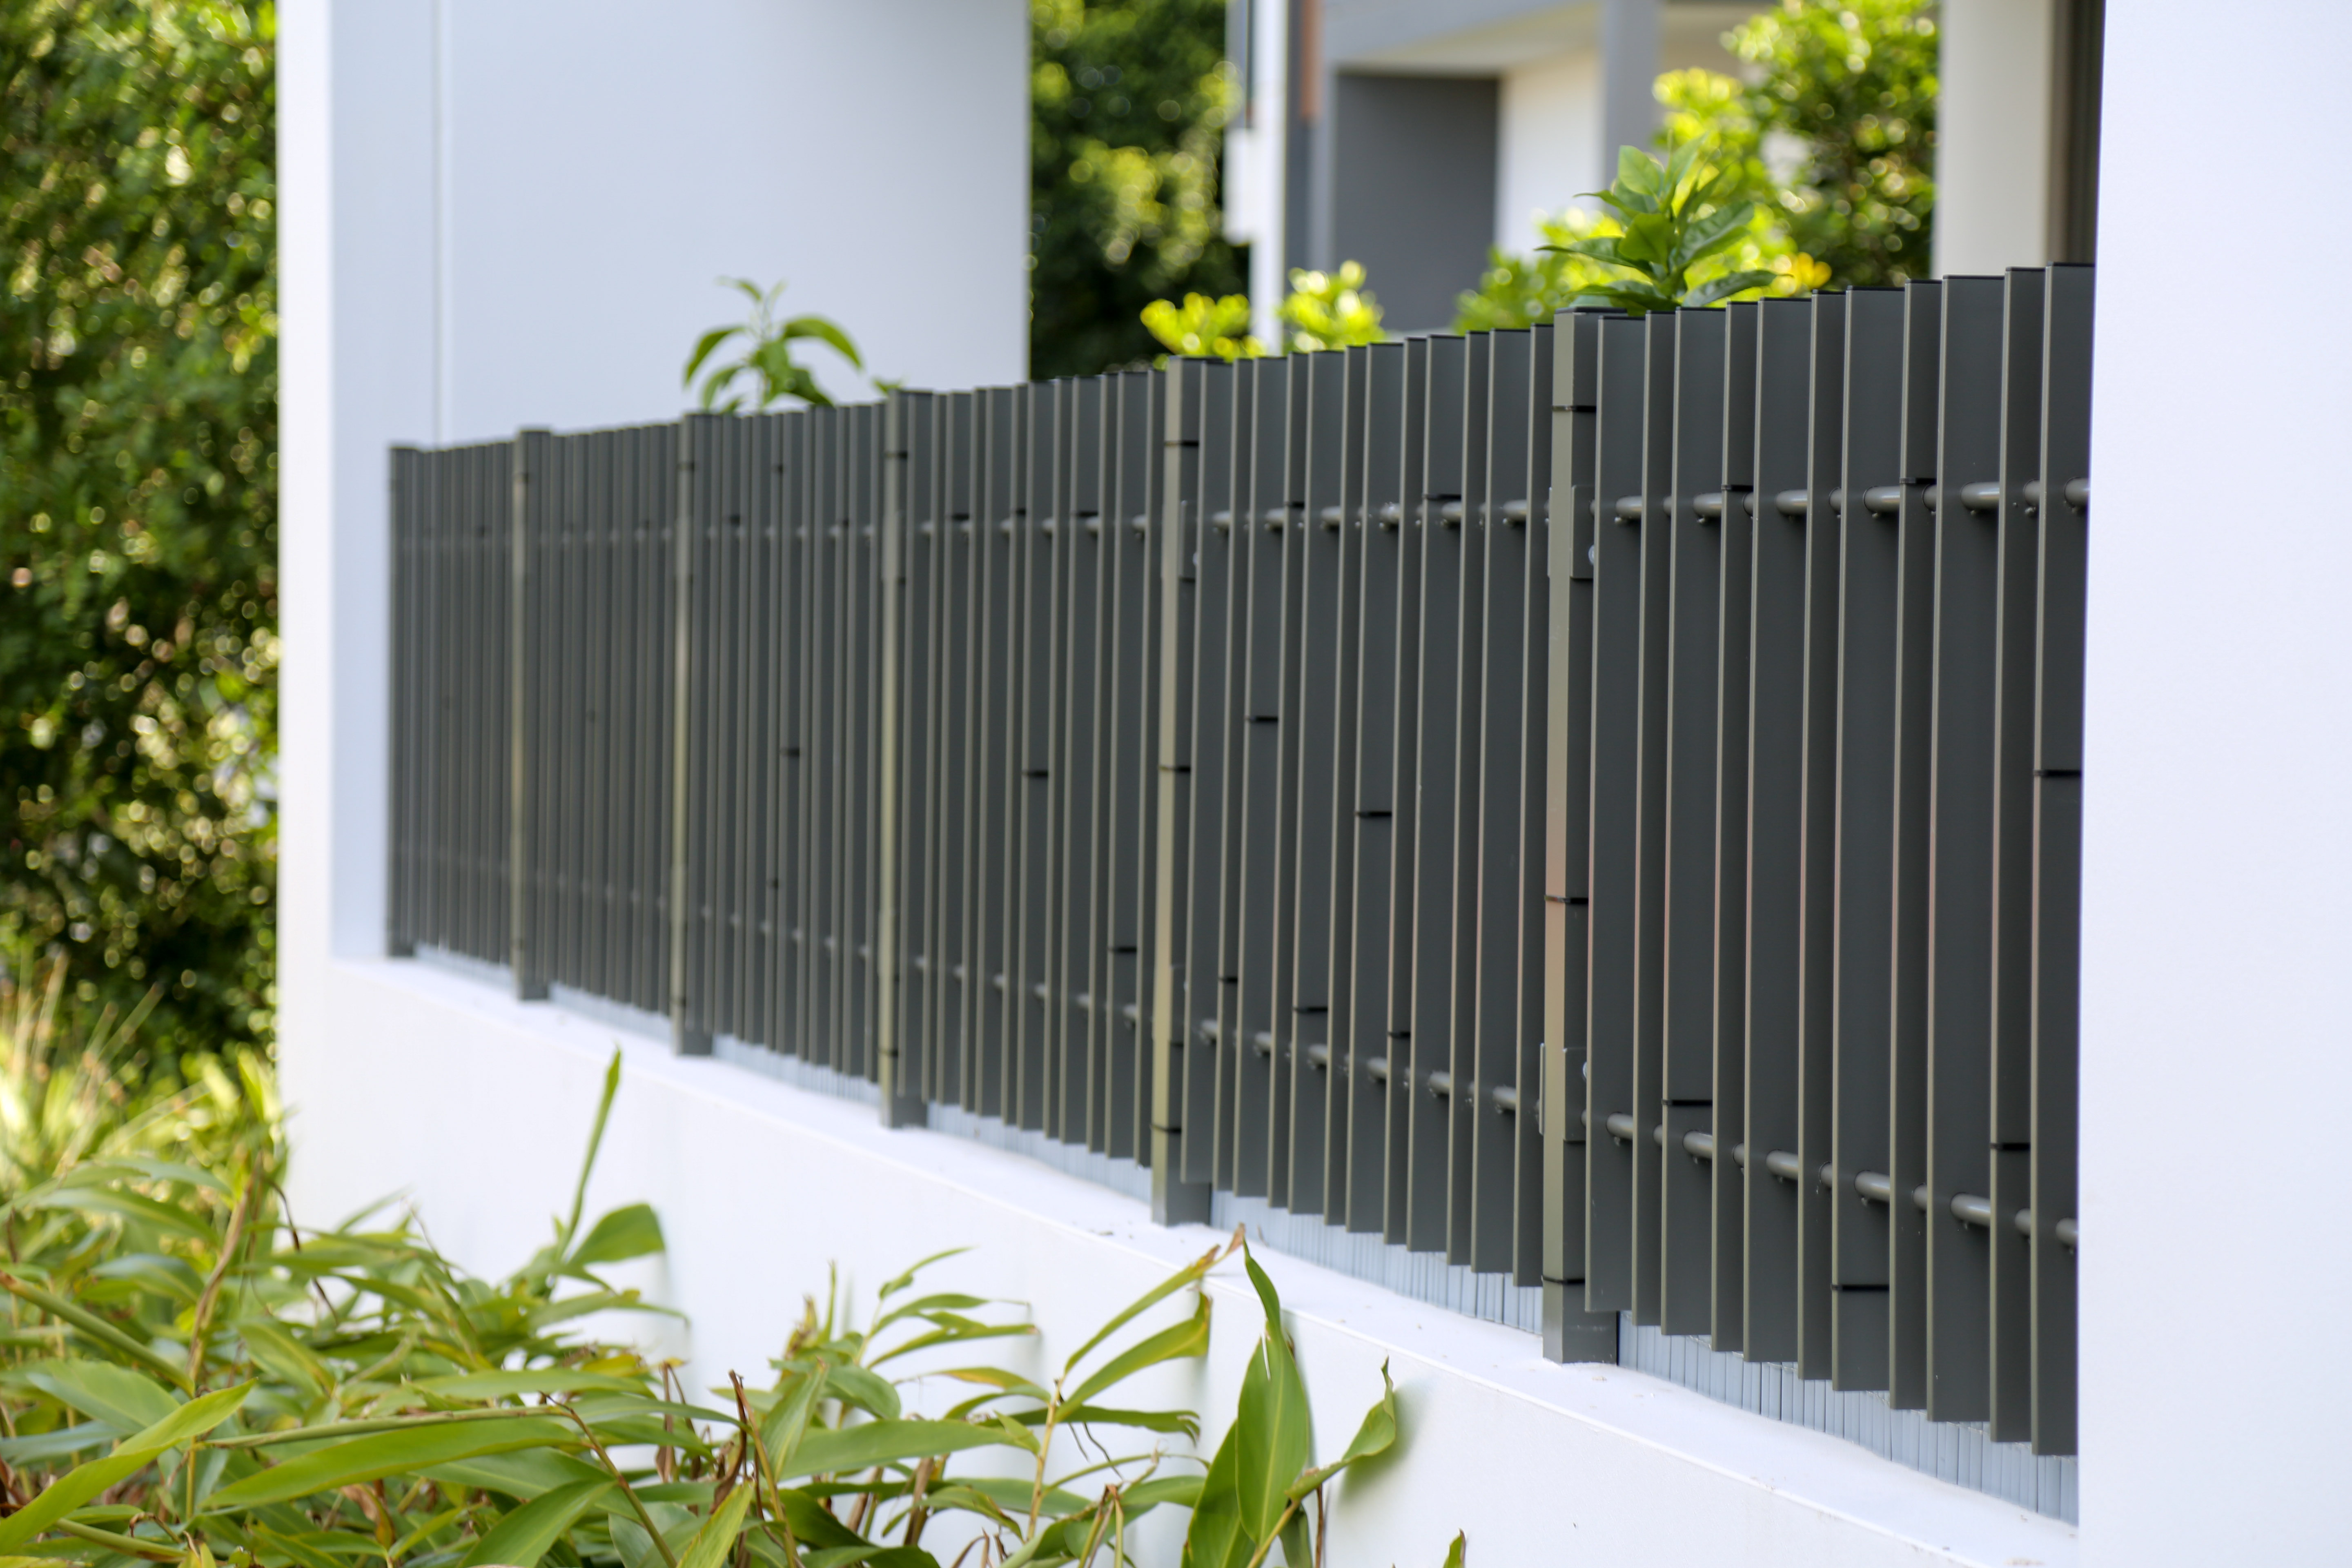 Security fencing yme metal projects